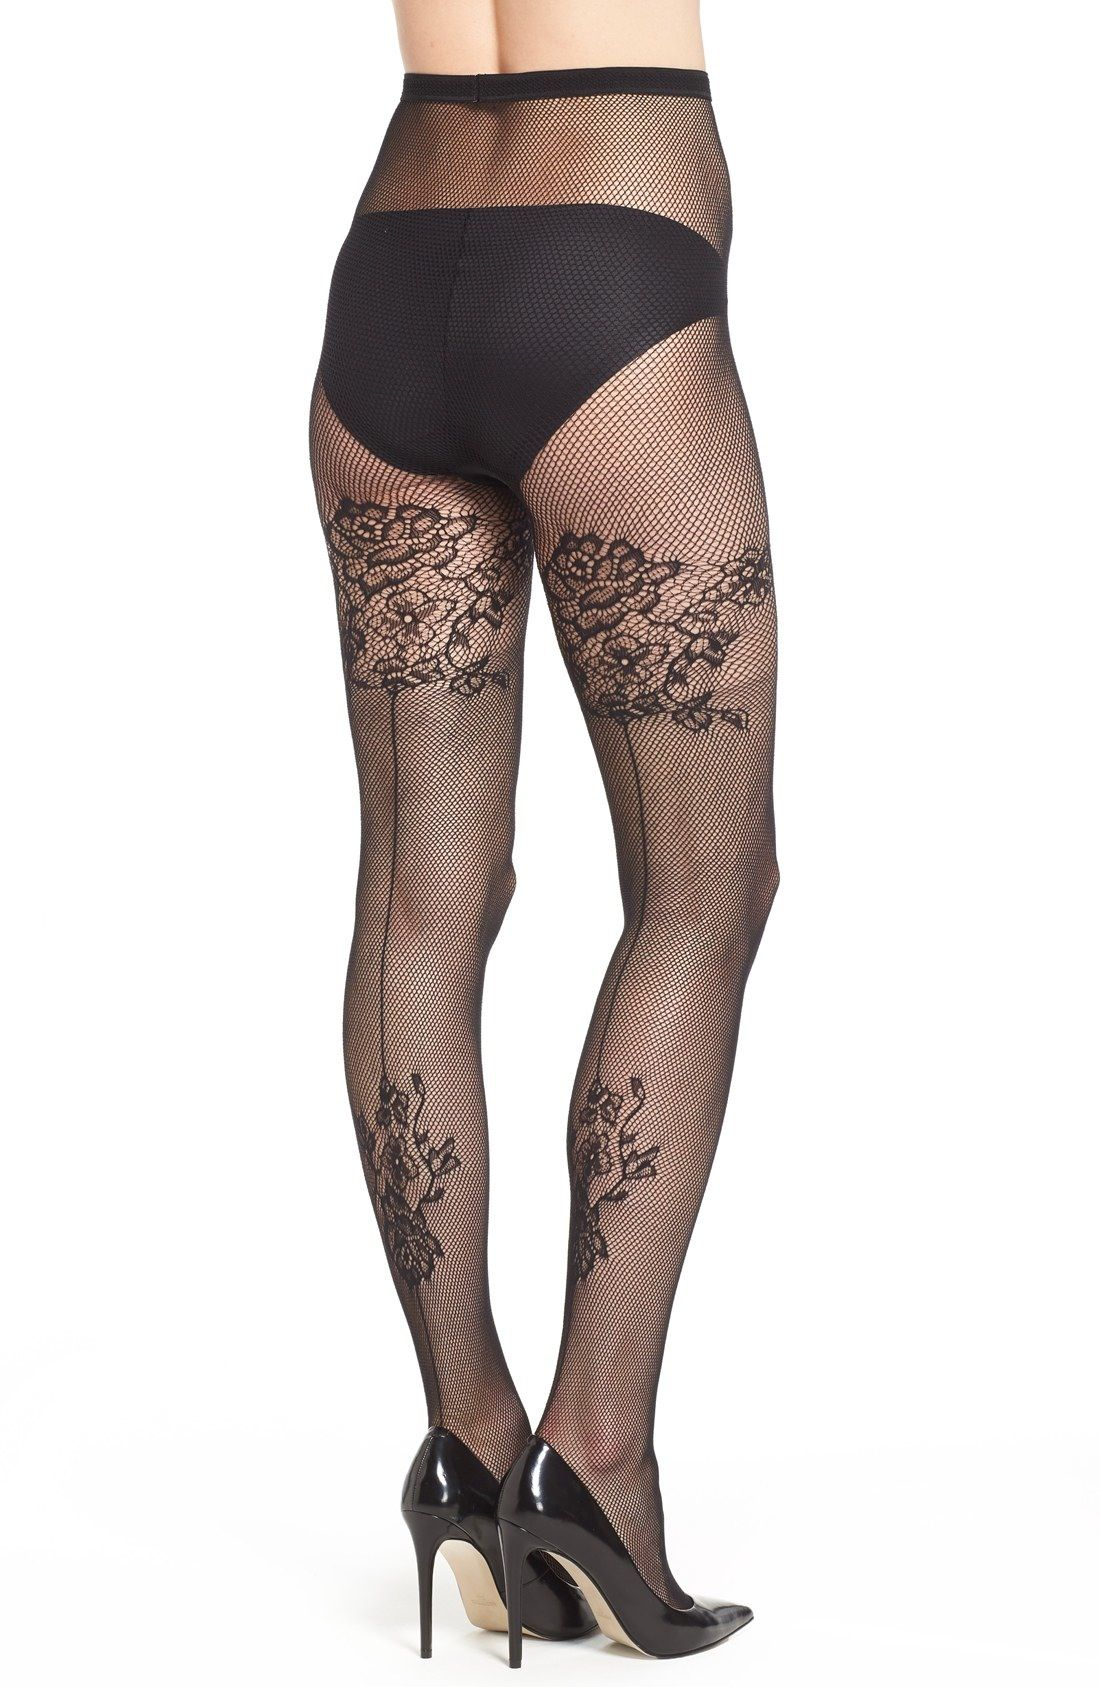 15cbbb232 Pretty Polly Floral Pattern Back Seam Fishnet Pantyhose available at   Nordstrom